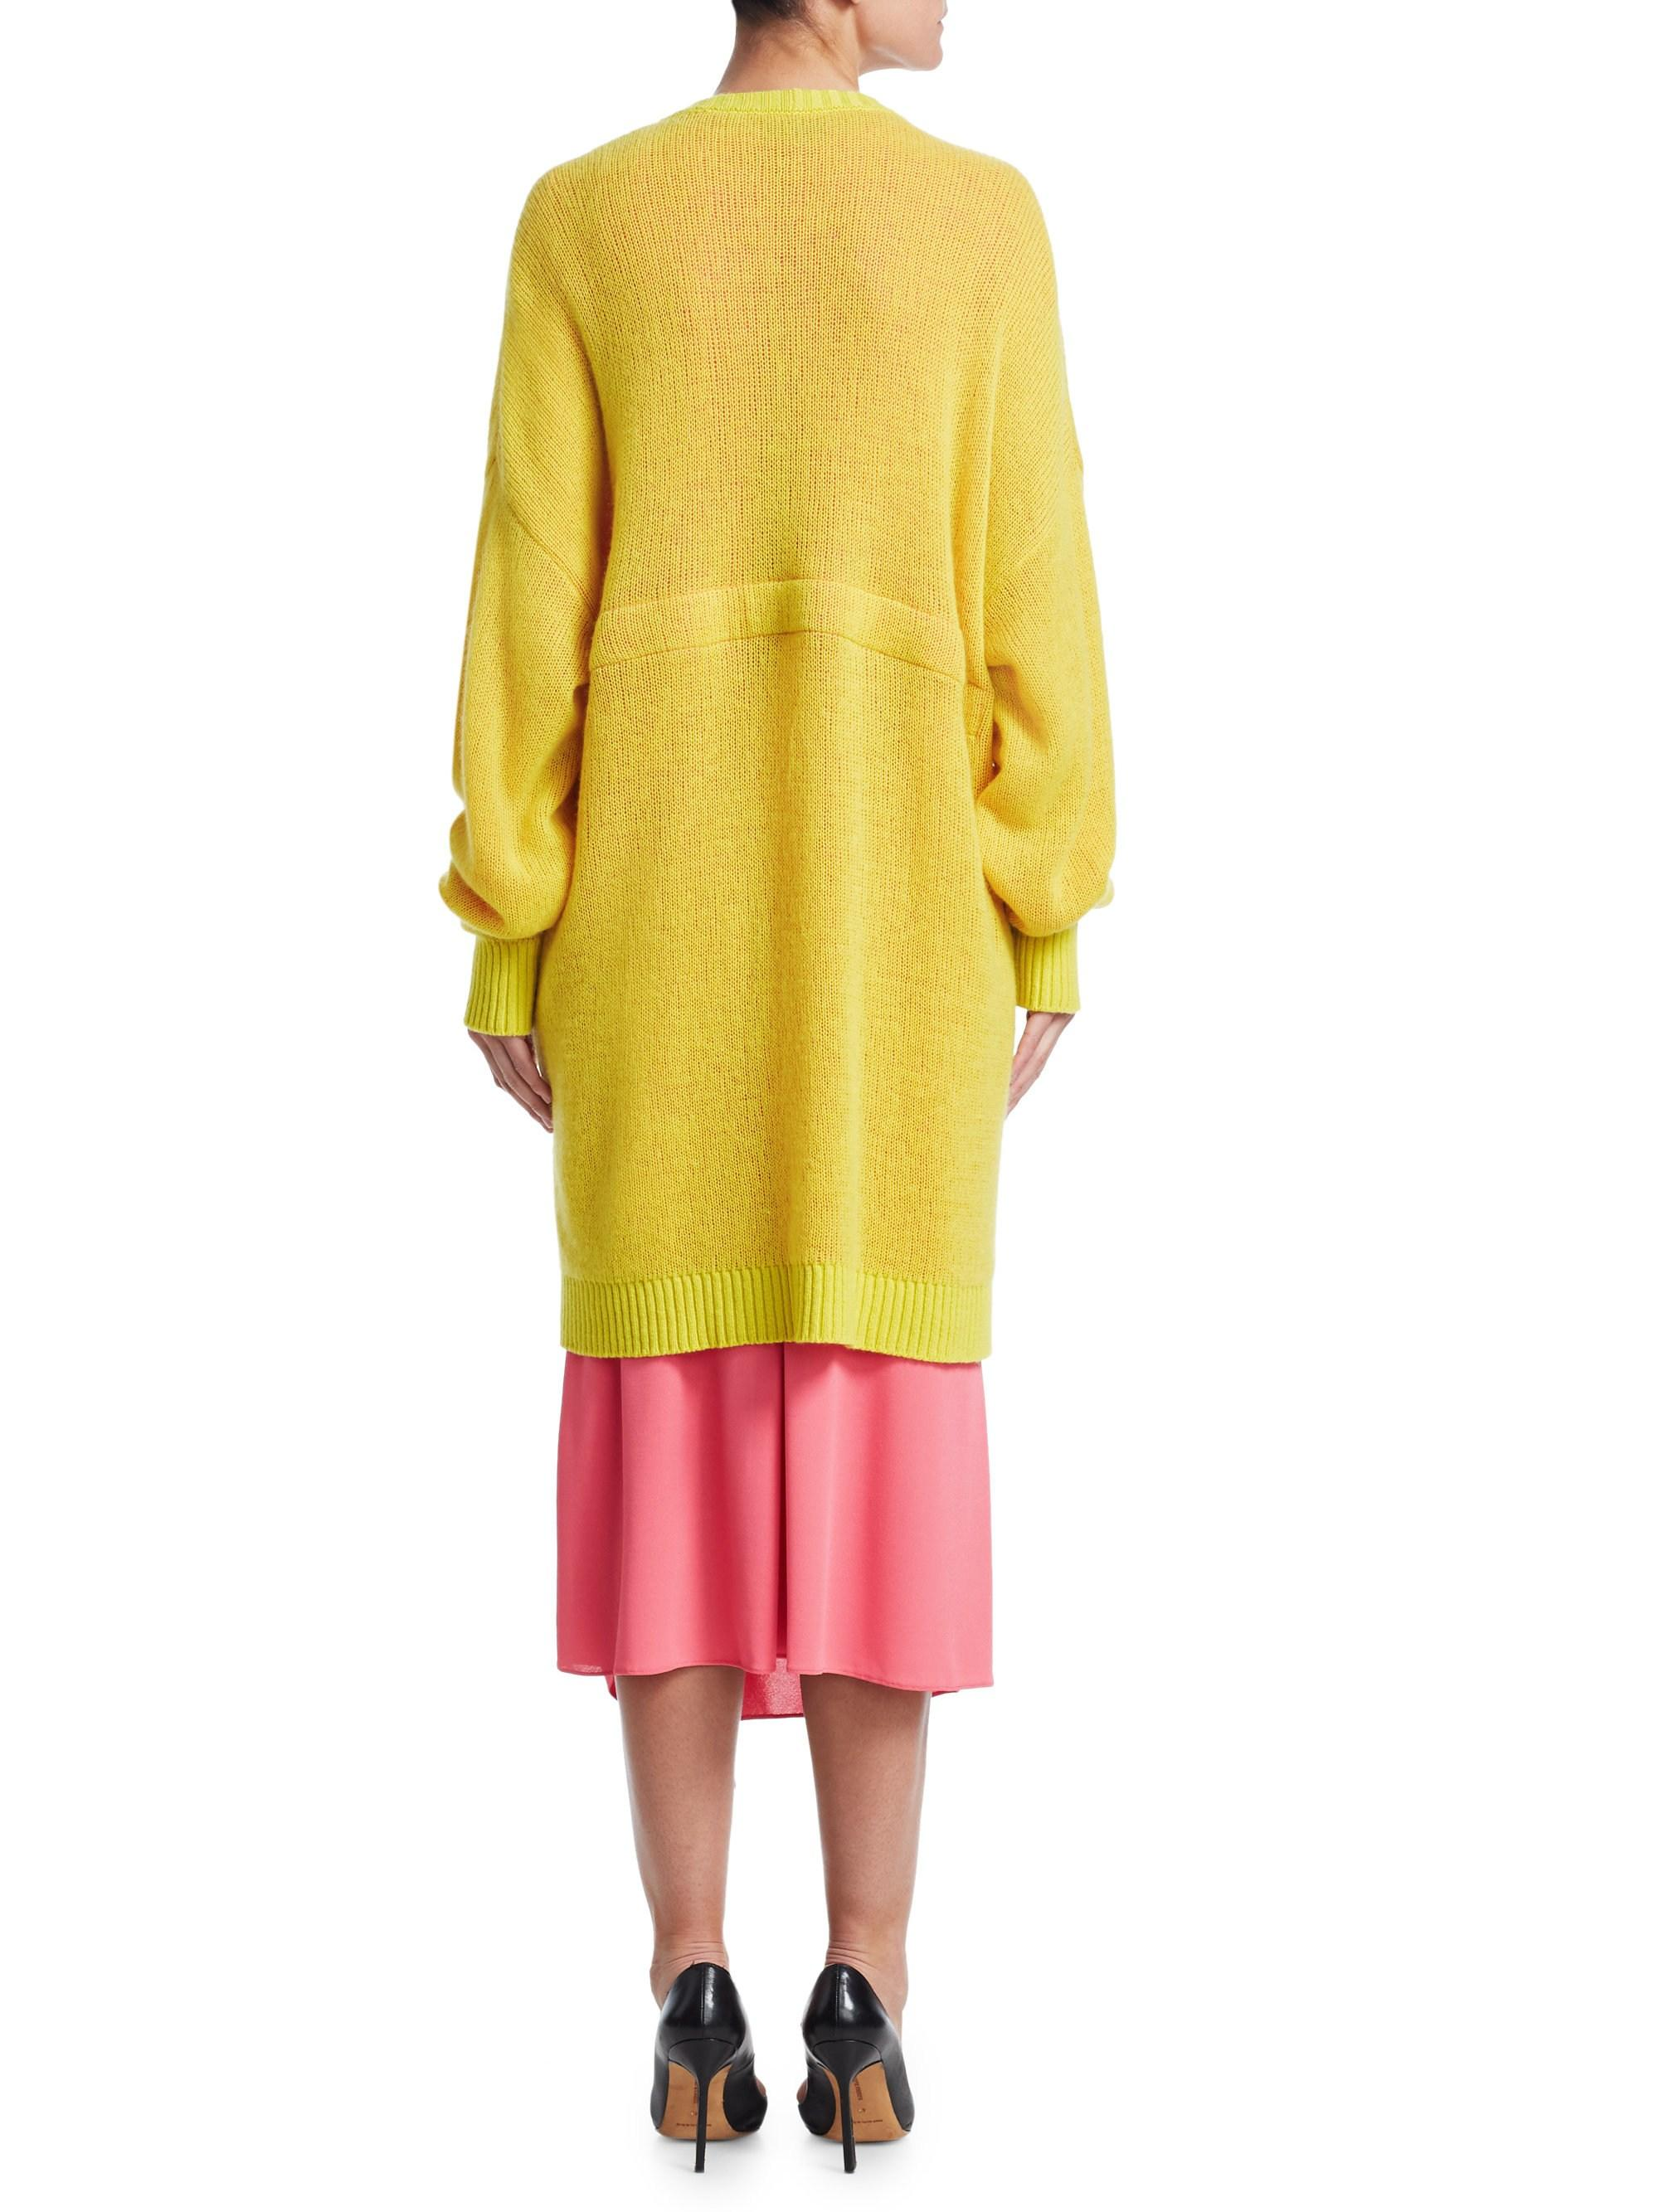 5e7f09b041 Tre by Natalie Ratabesi - Women s Miki Open Front Sweater - Pink Acid Yellow  - Size. View fullscreen